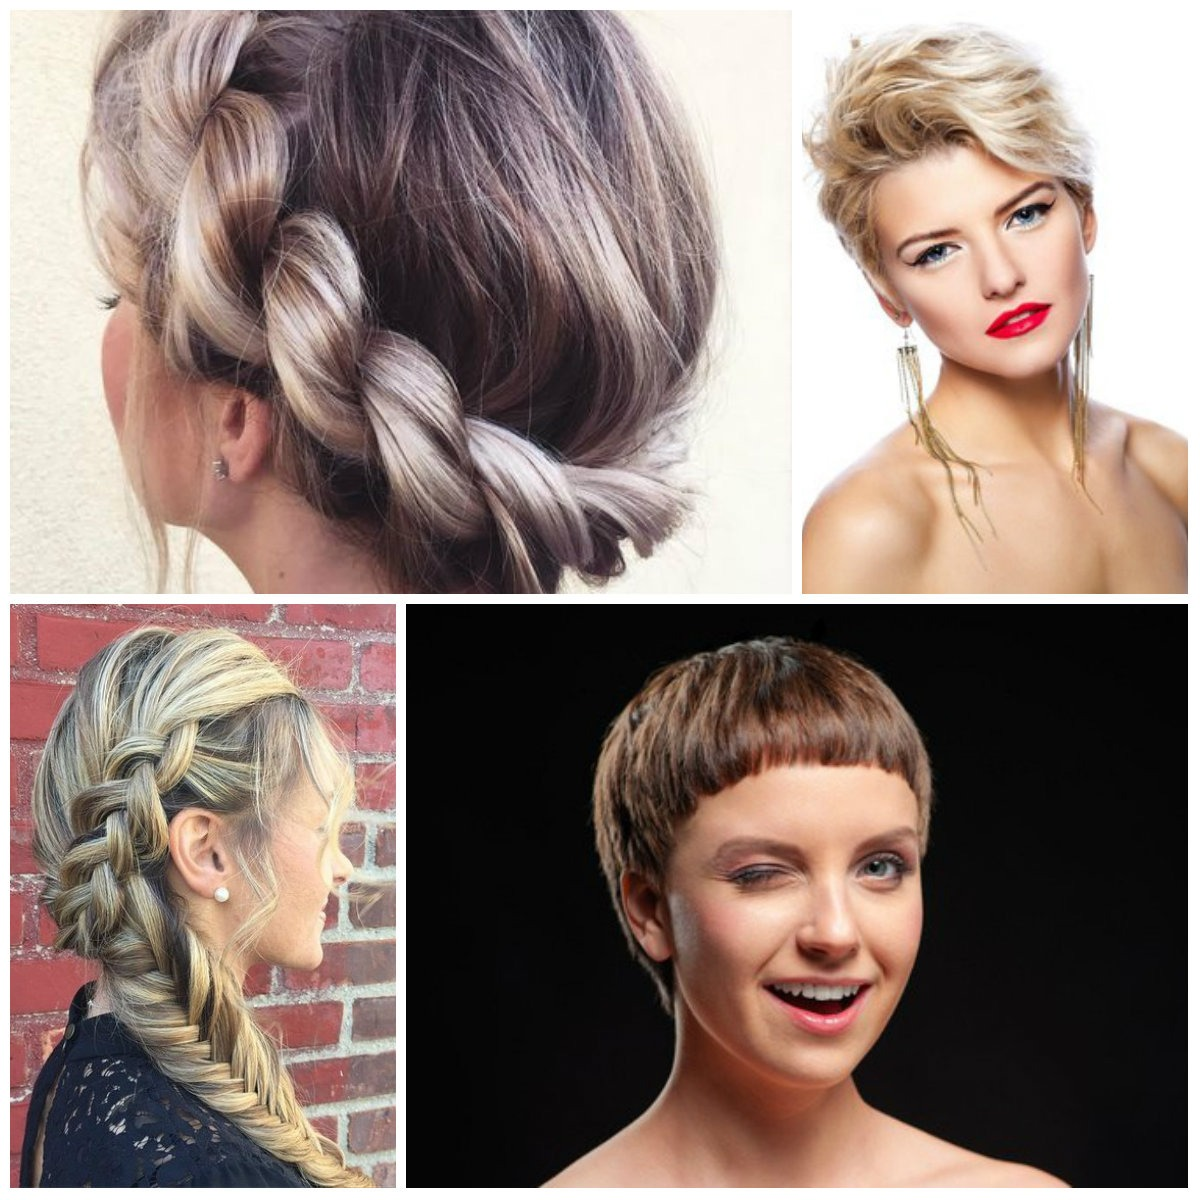 Stylish hairstyles for teens